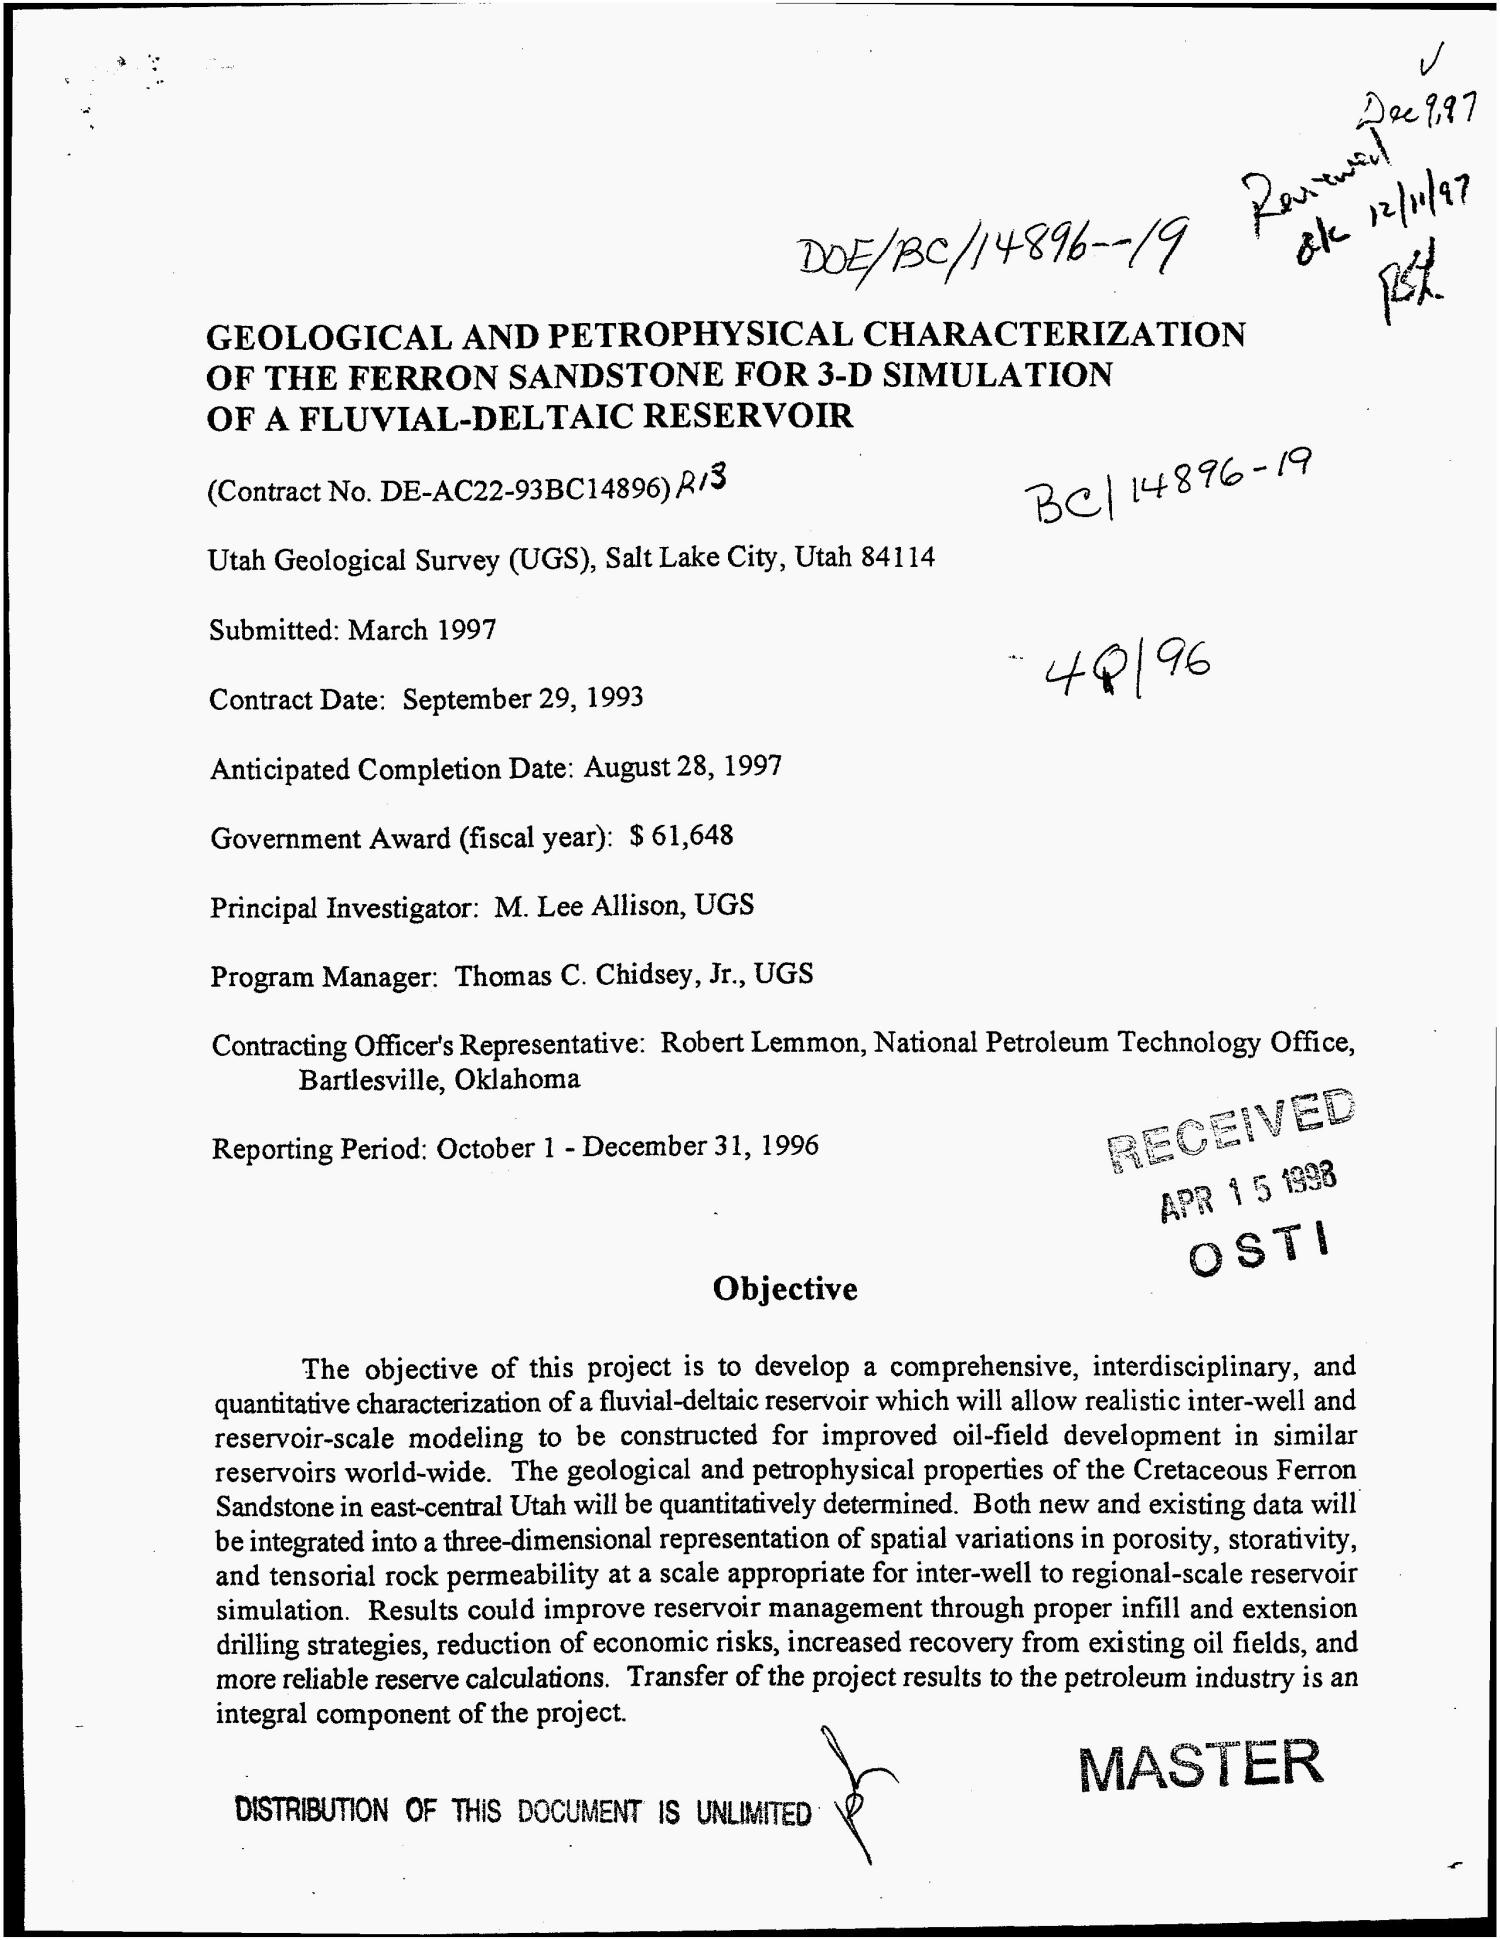 Geological and petrophysical characterization of the Ferron Sandstone for 3-D simulation of a fluvial-deltaic resevoir. Quarterly report, October 1, 1996--December 31, 1996                                                                                                      [Sequence #]: 1 of 22